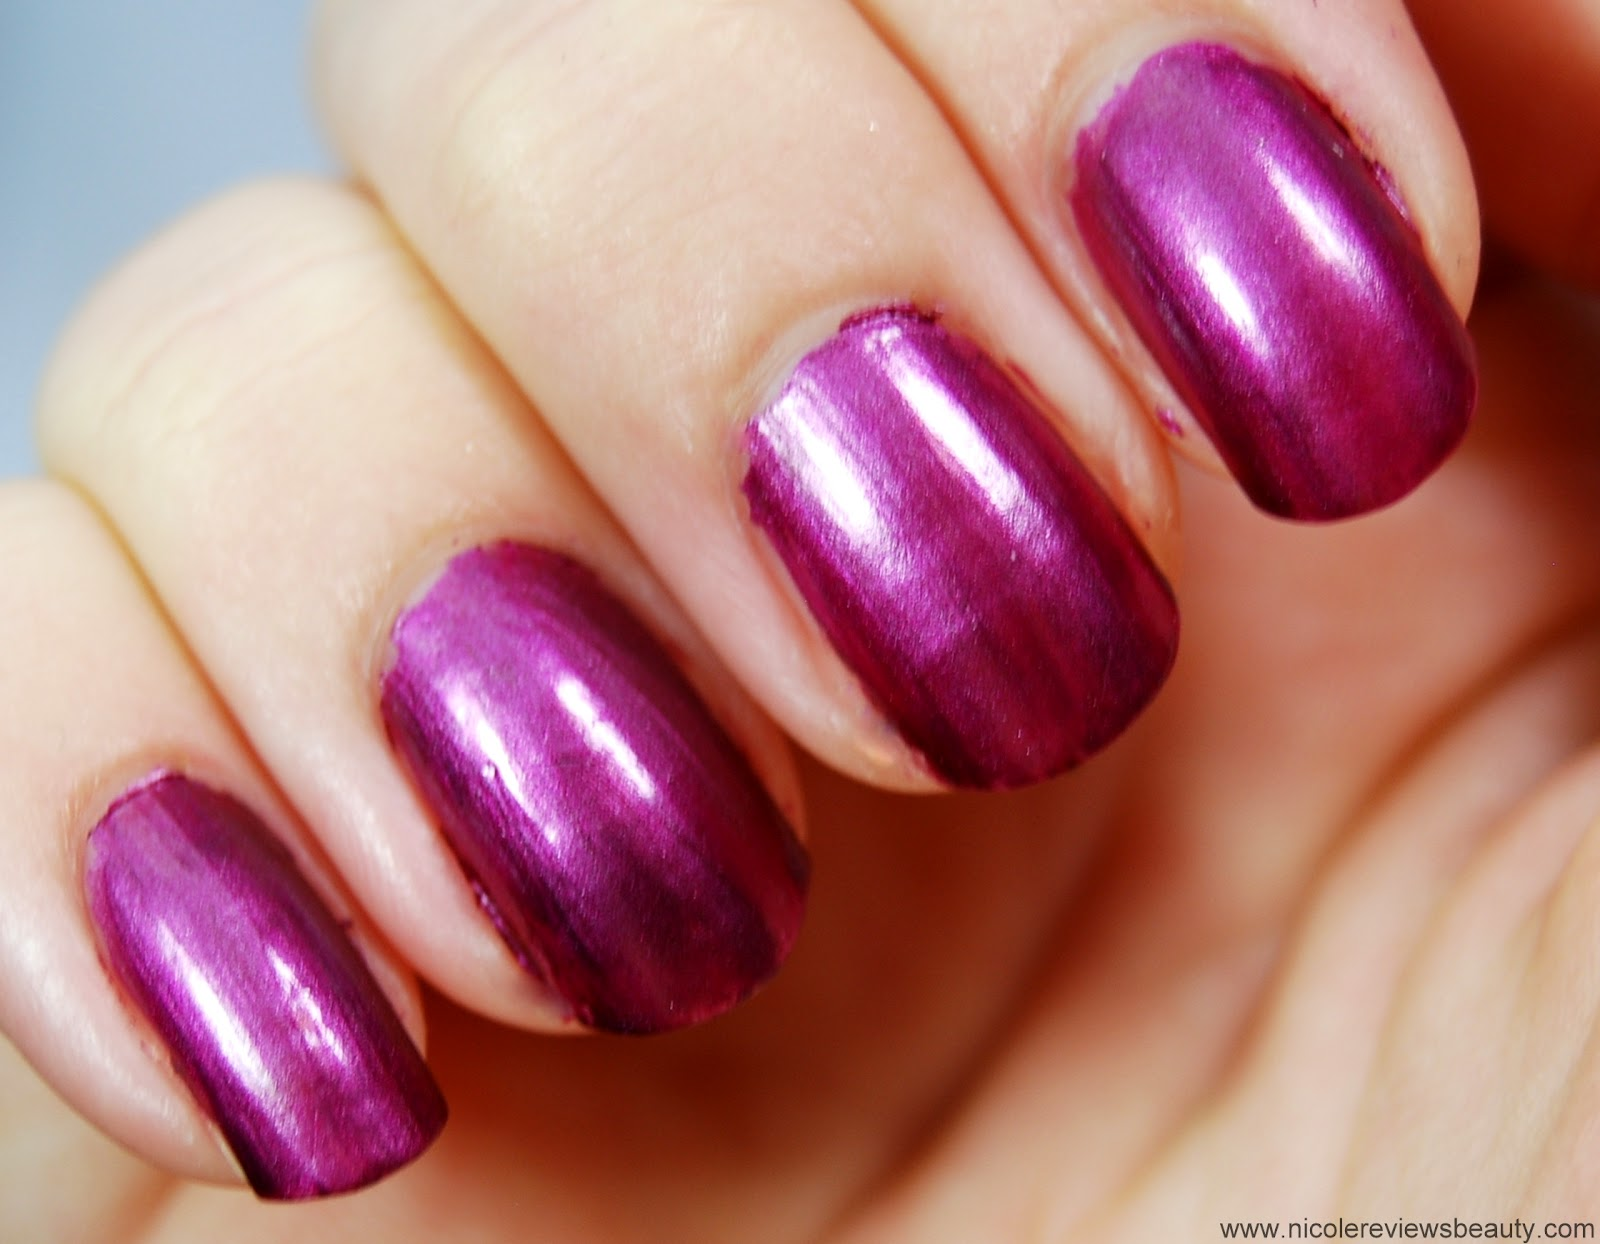 Sally Hansen Magnetic Nail Color in Red-y Response Review and Swatches